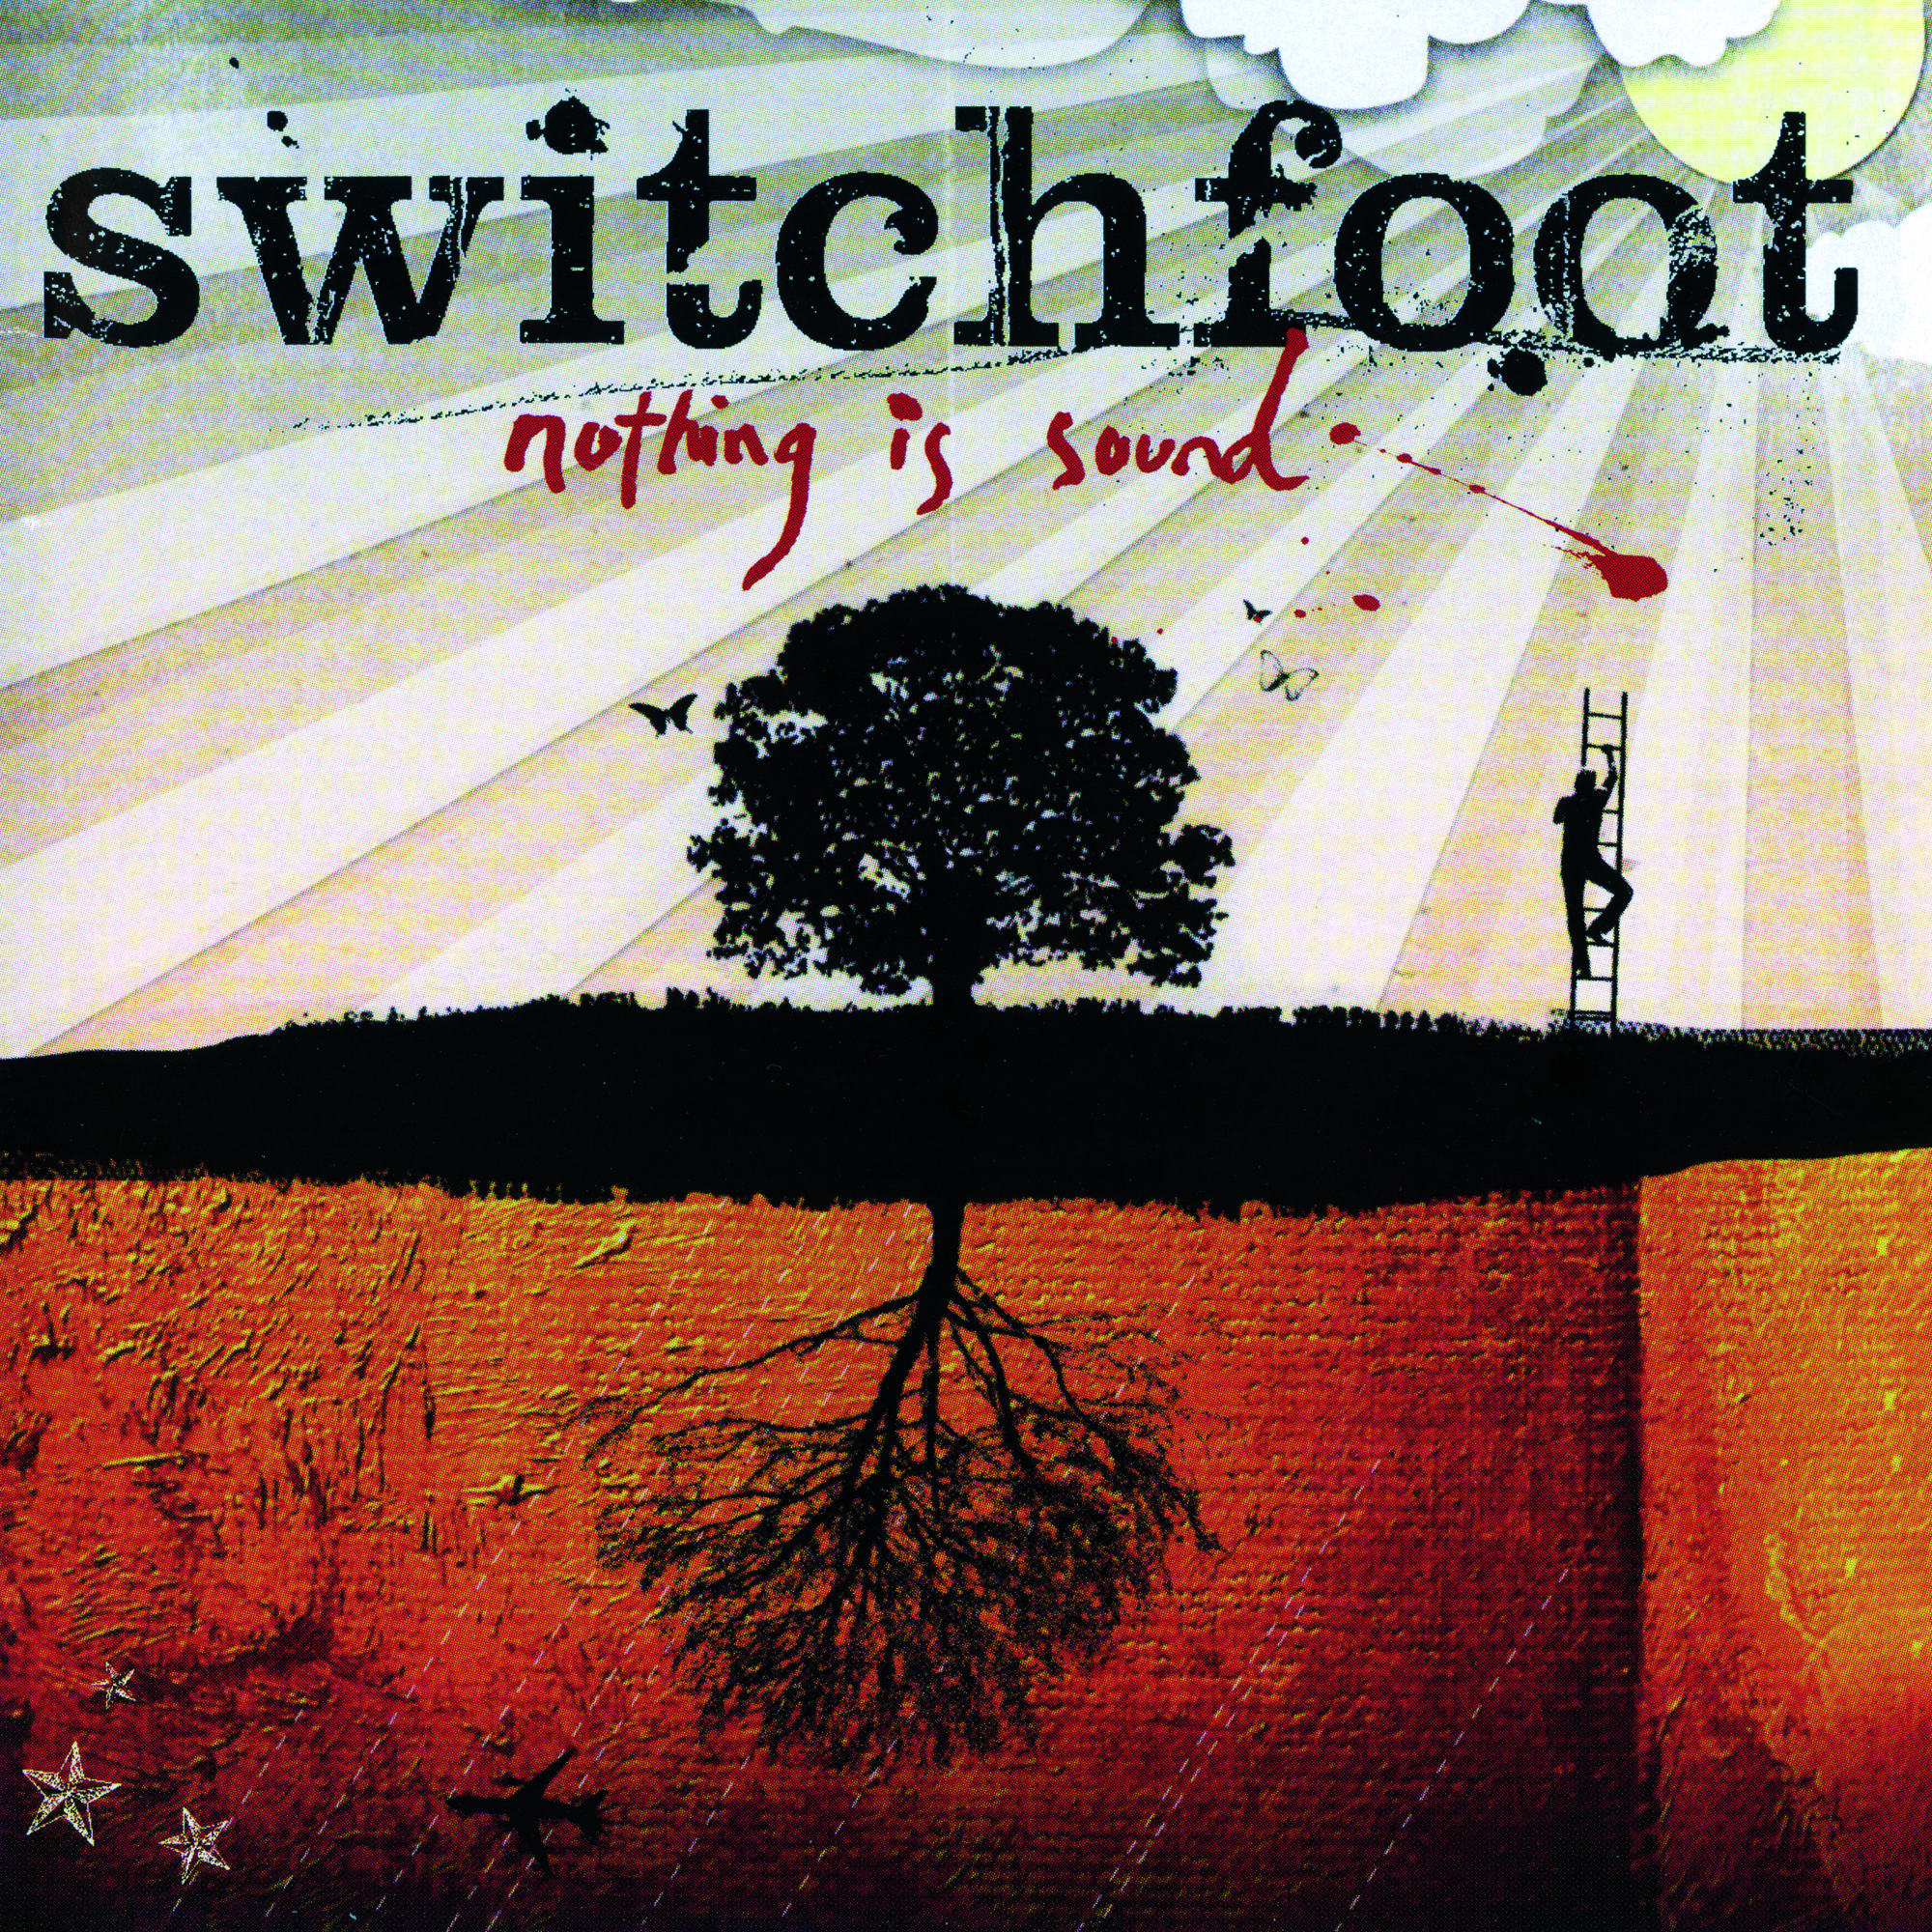 Switchfoot Quot Nothing Is Sound Quot Vinyl Reissue And Pre Order